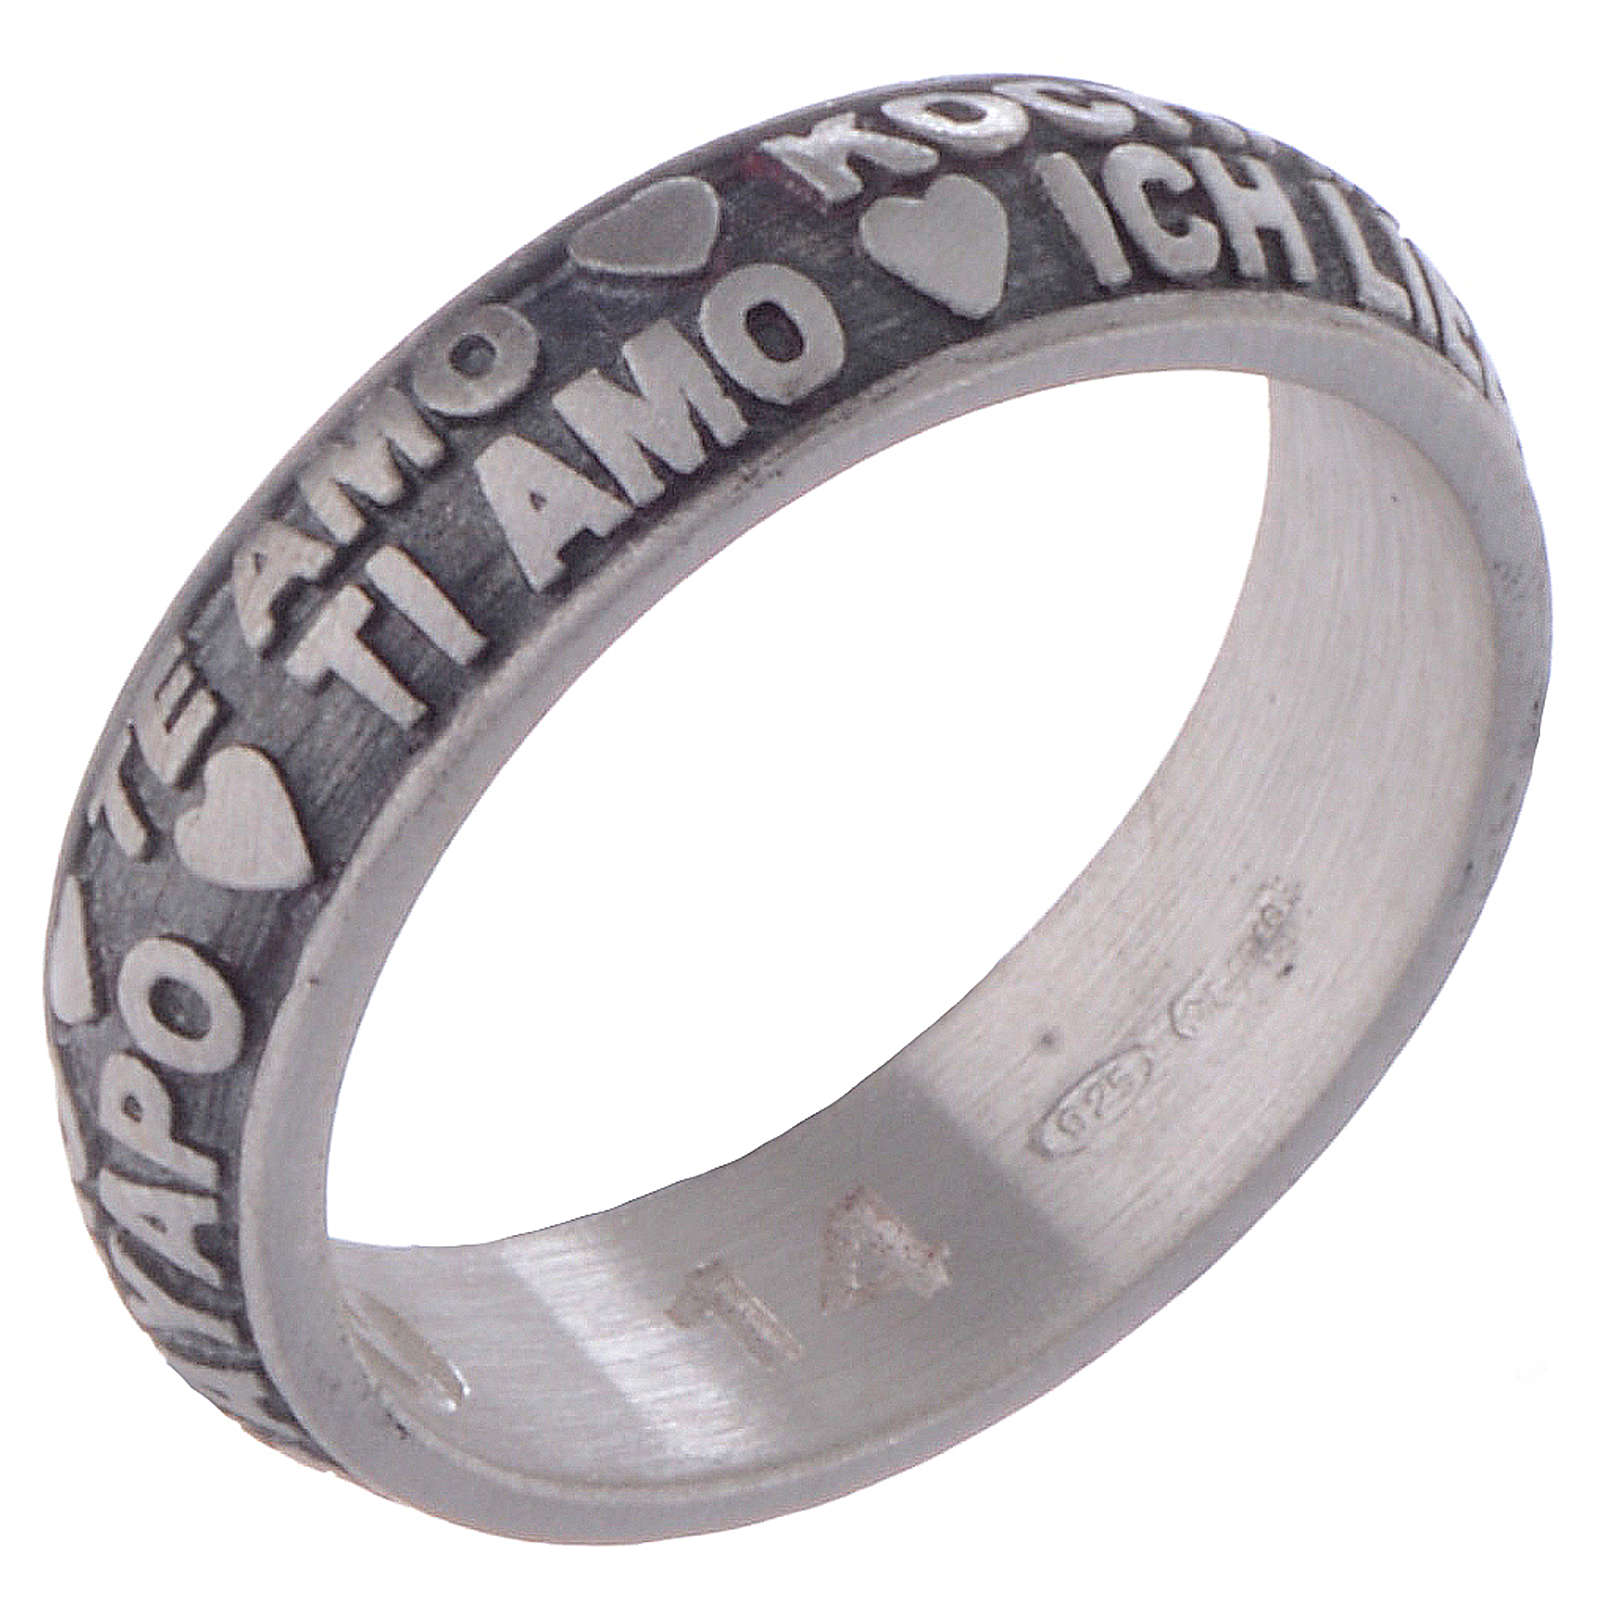 I Love You ring in burnished sterling silver AMEN 3